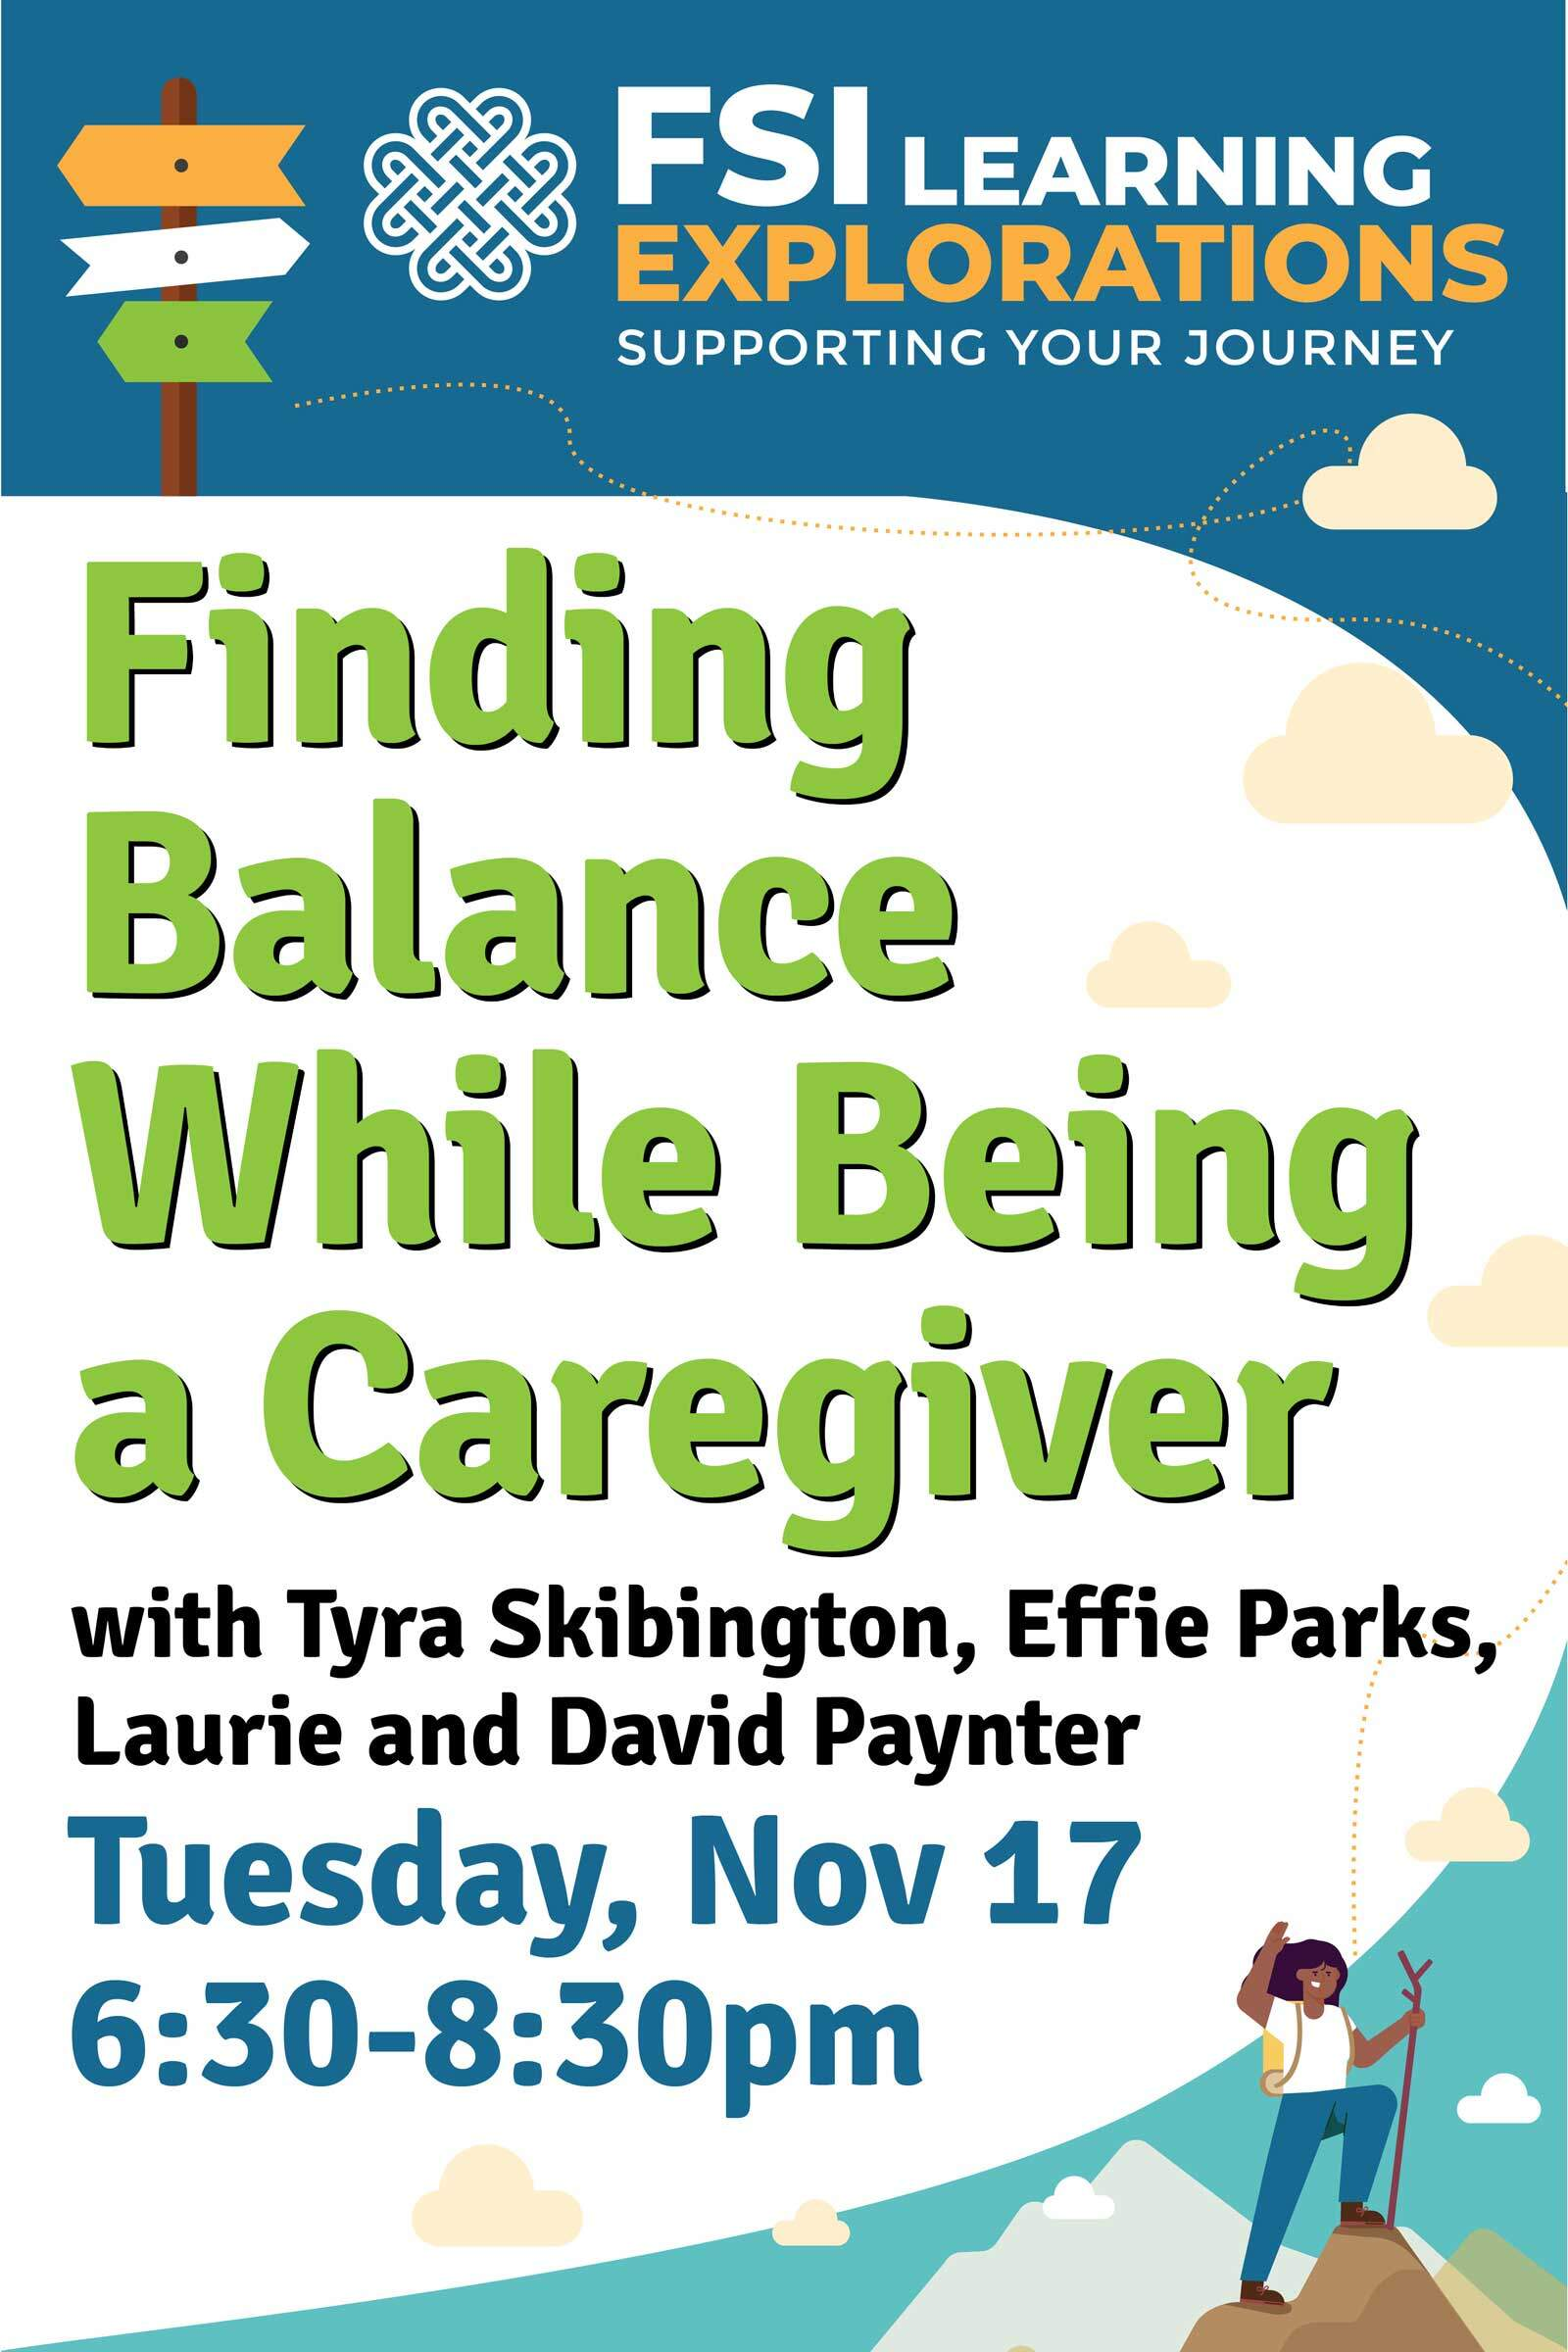 FSI Learning Explorations - Finding Balance While Being a Caregiver